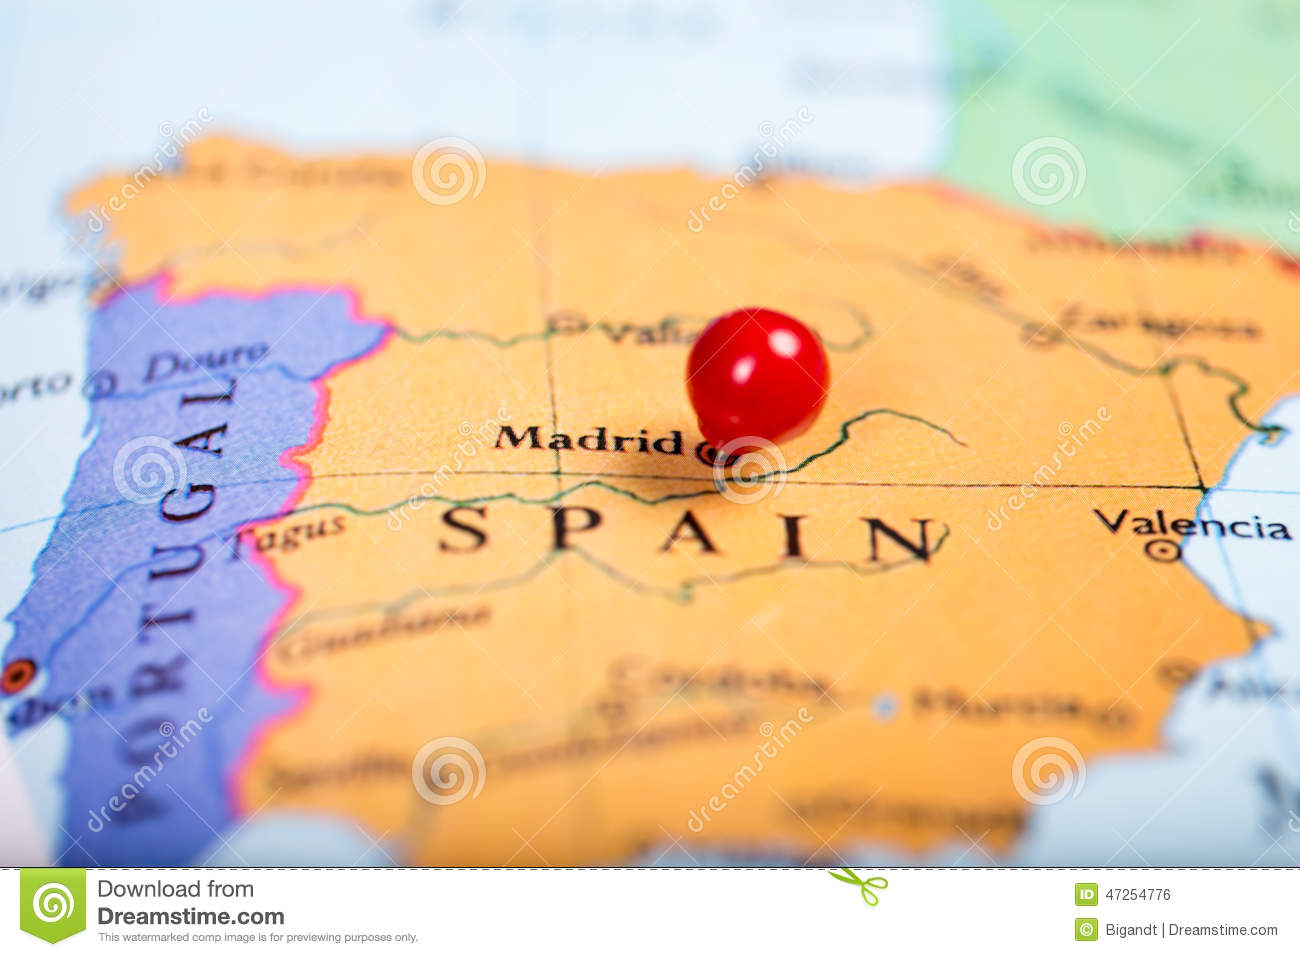 thumbtack map with Stock Photo Red Push Pin Map Spain Europe Round Placed City Madrid Image47254776 on Logo Design together with Chartreuse left mapmarker pushpin icon furthermore All besides Push Pin   4376 in addition Photo Libre De Droits Punaise Rouge Image16462535.